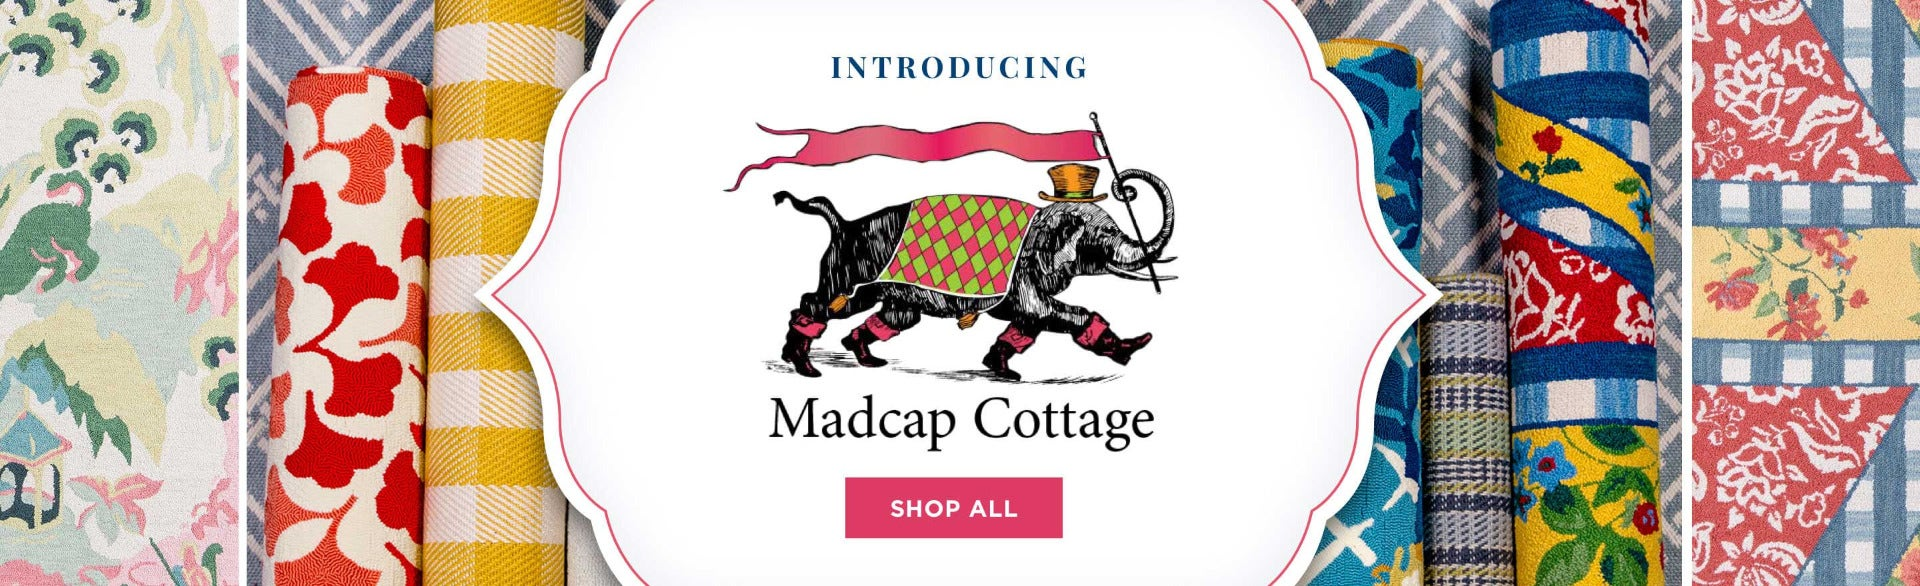 Madcap Cottage